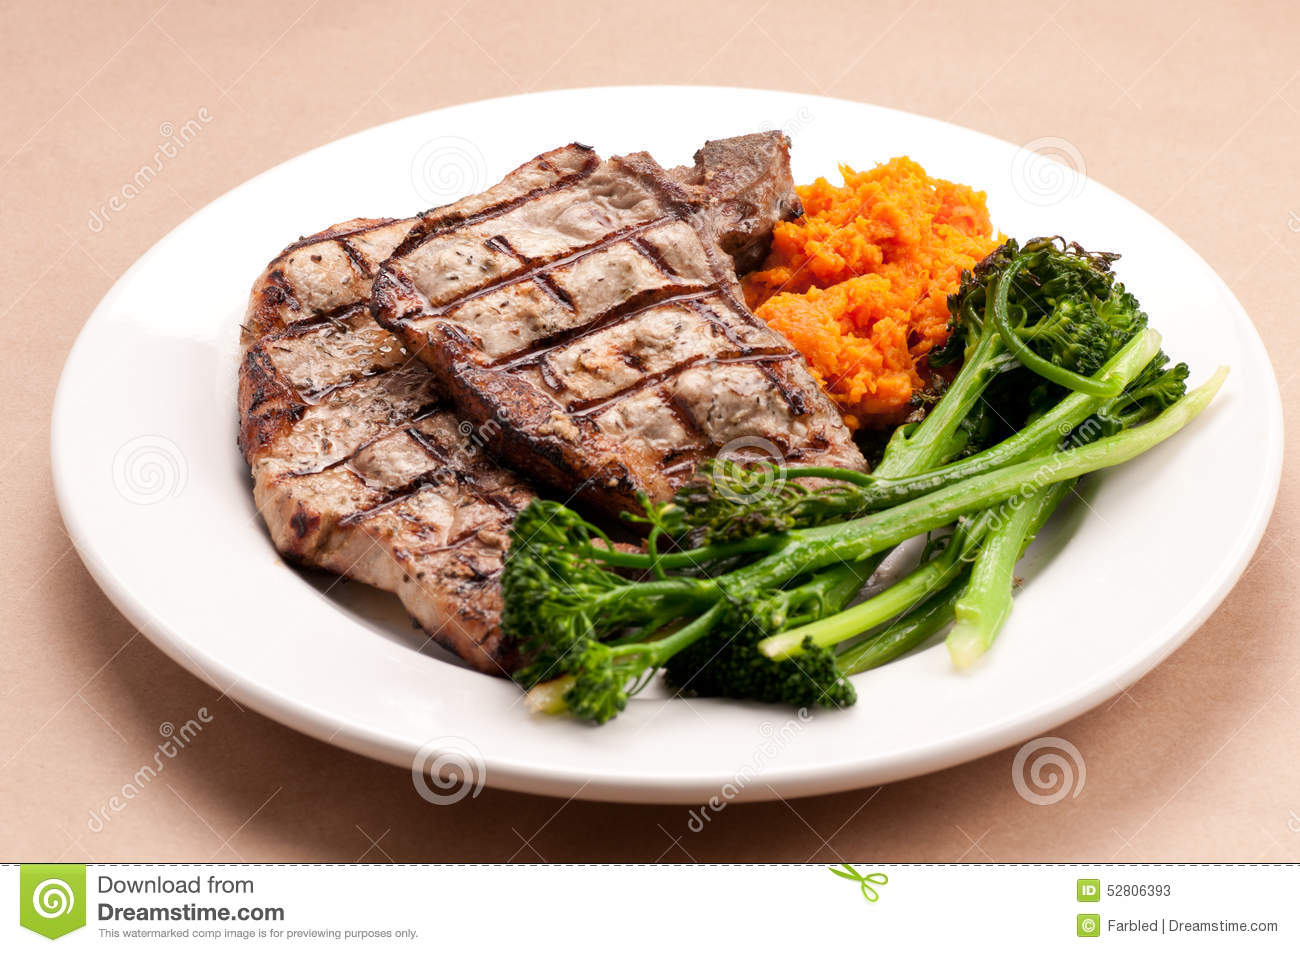 how to cook sirloin chops